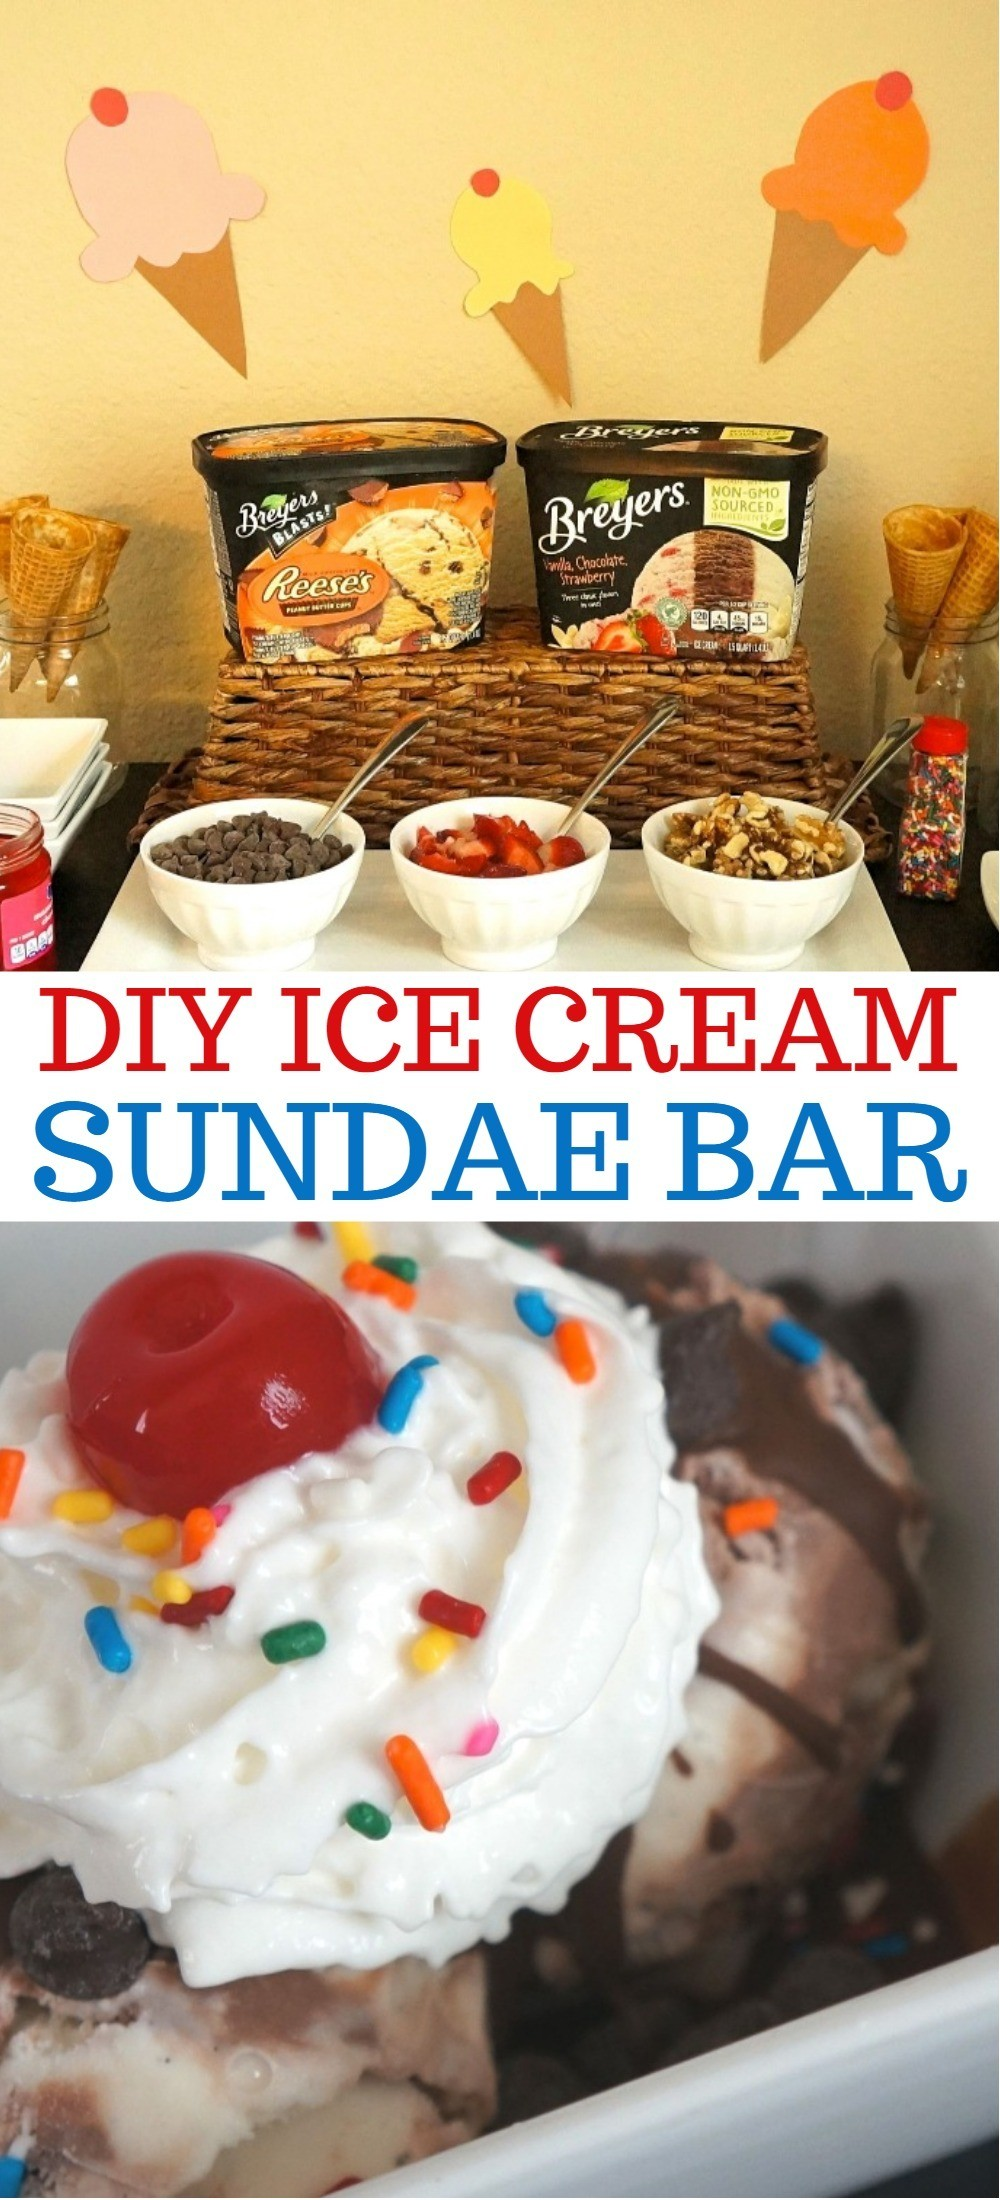 DIY Ice Cream Sundae Bar -Celebrating The End Of Summer With Fun Family DIY Ice Cream Party Ideas!